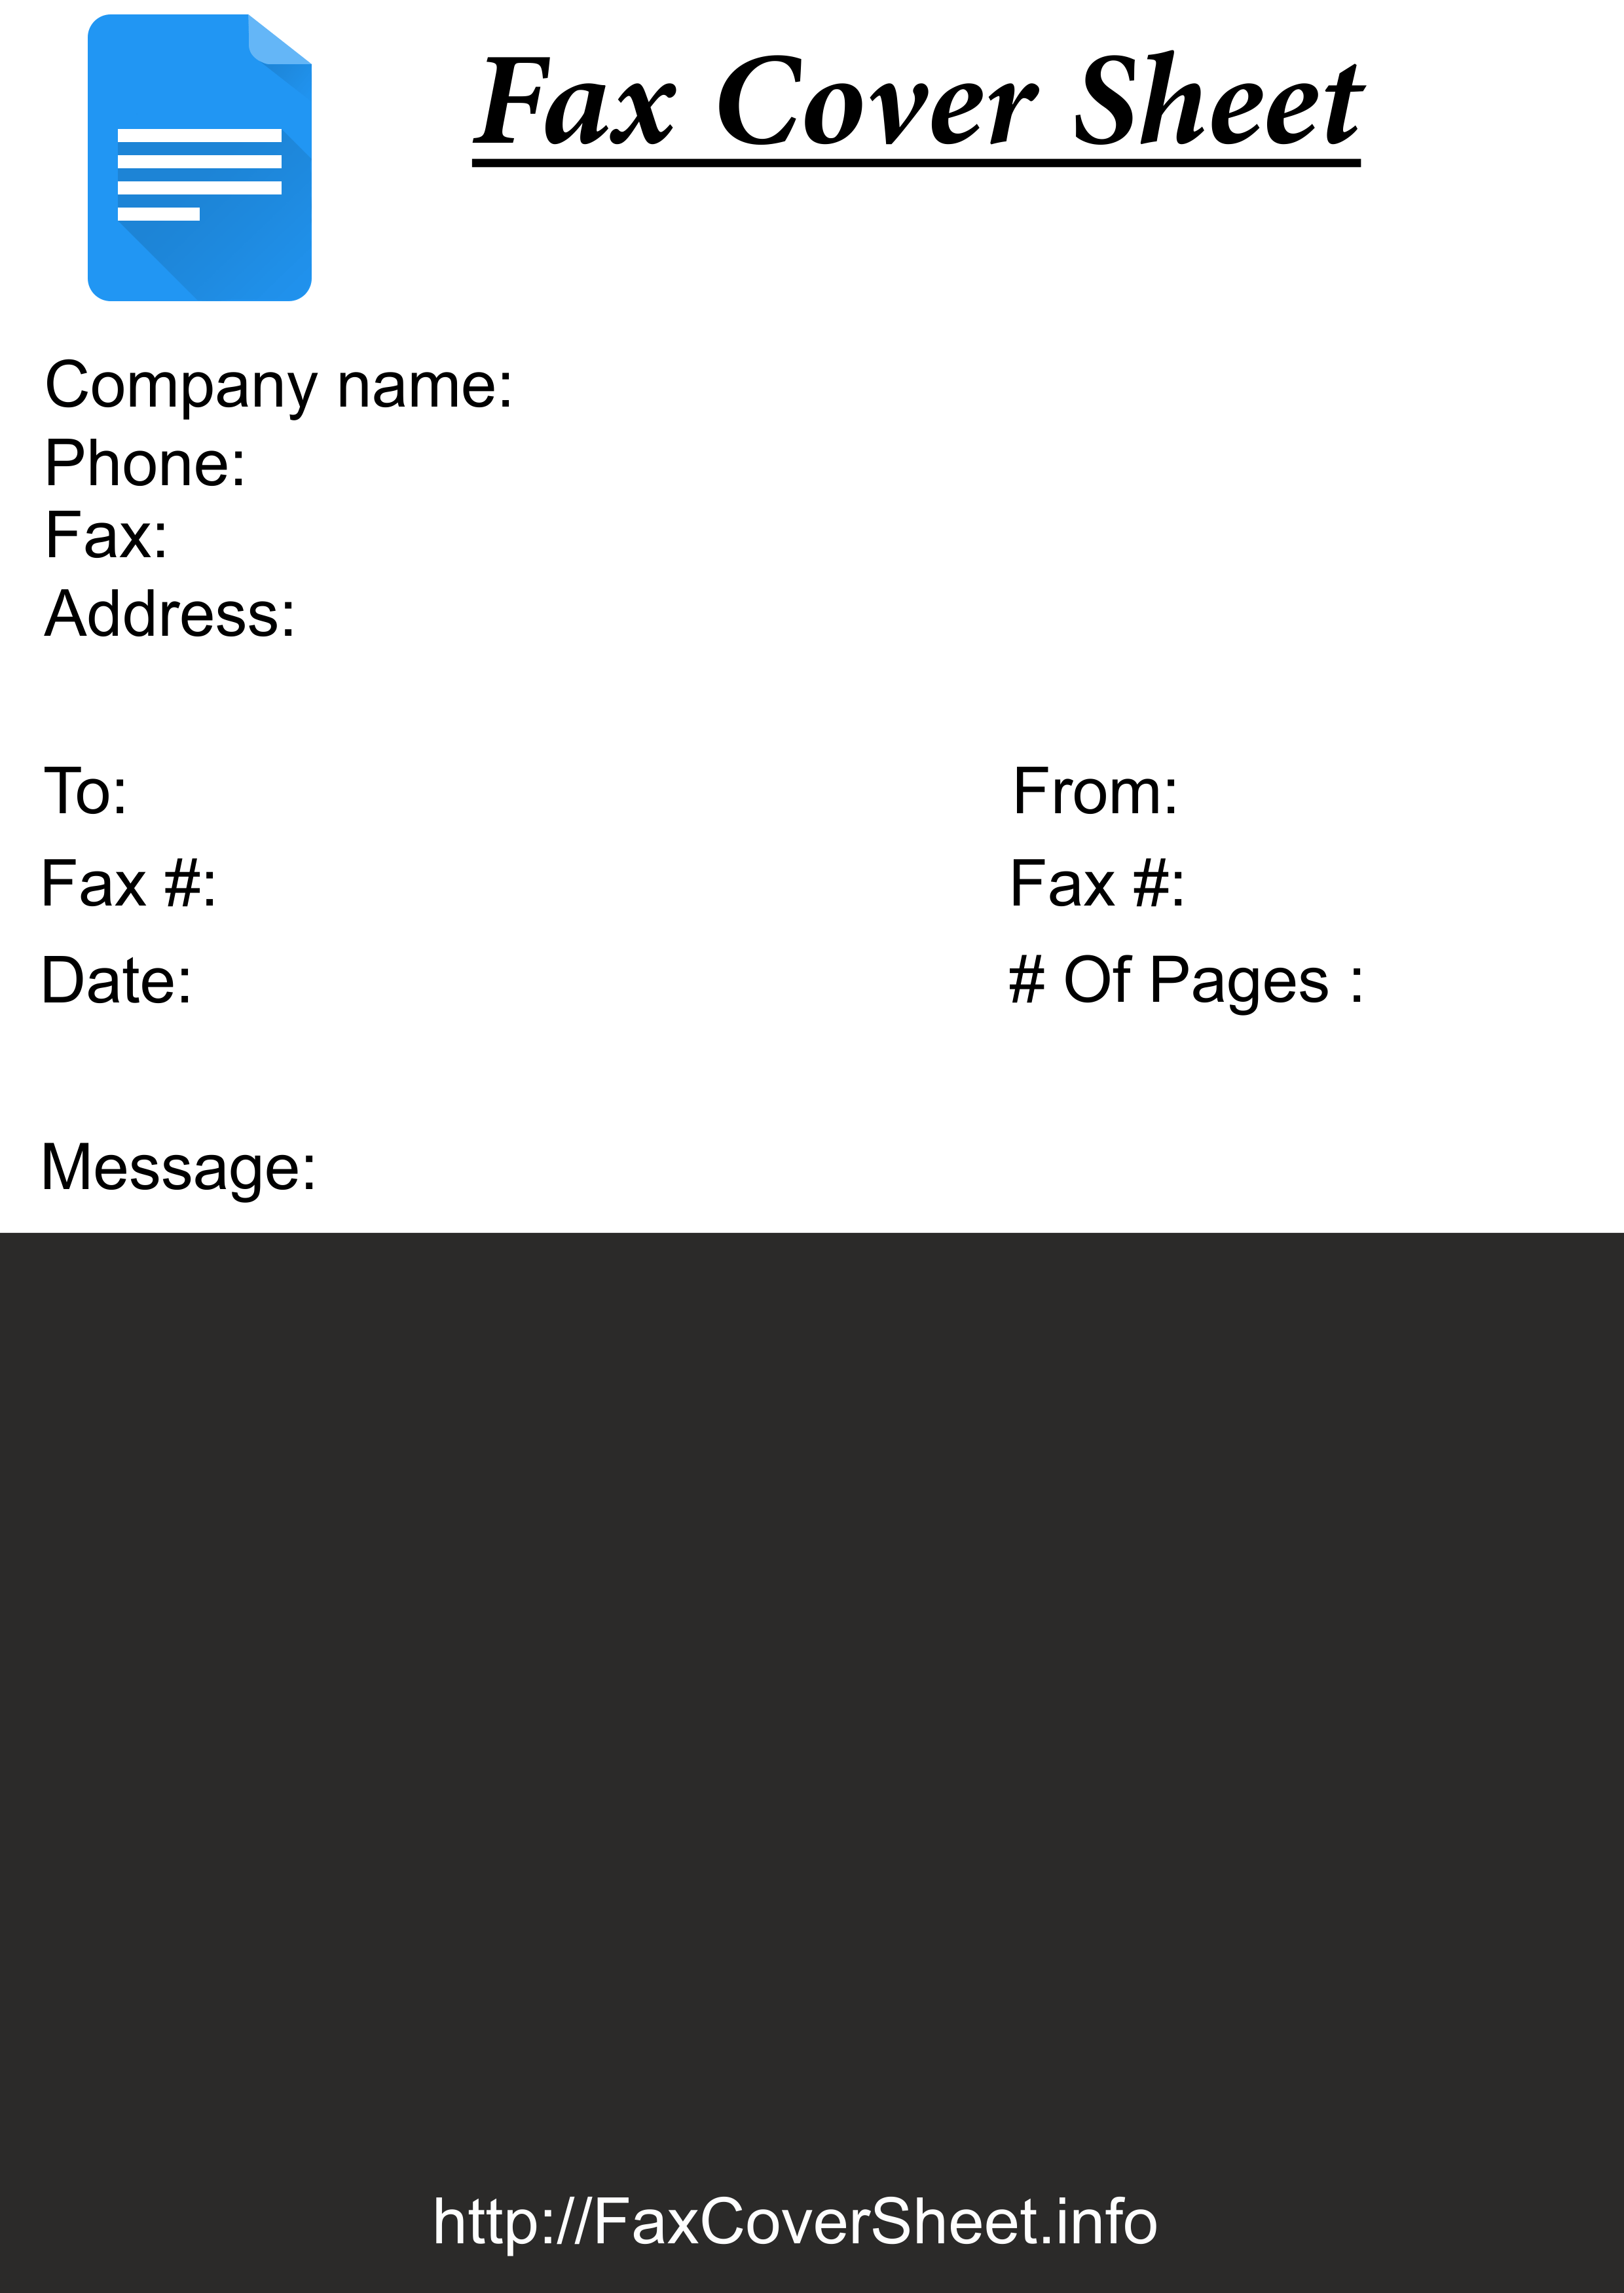 free fax cover sheet printable